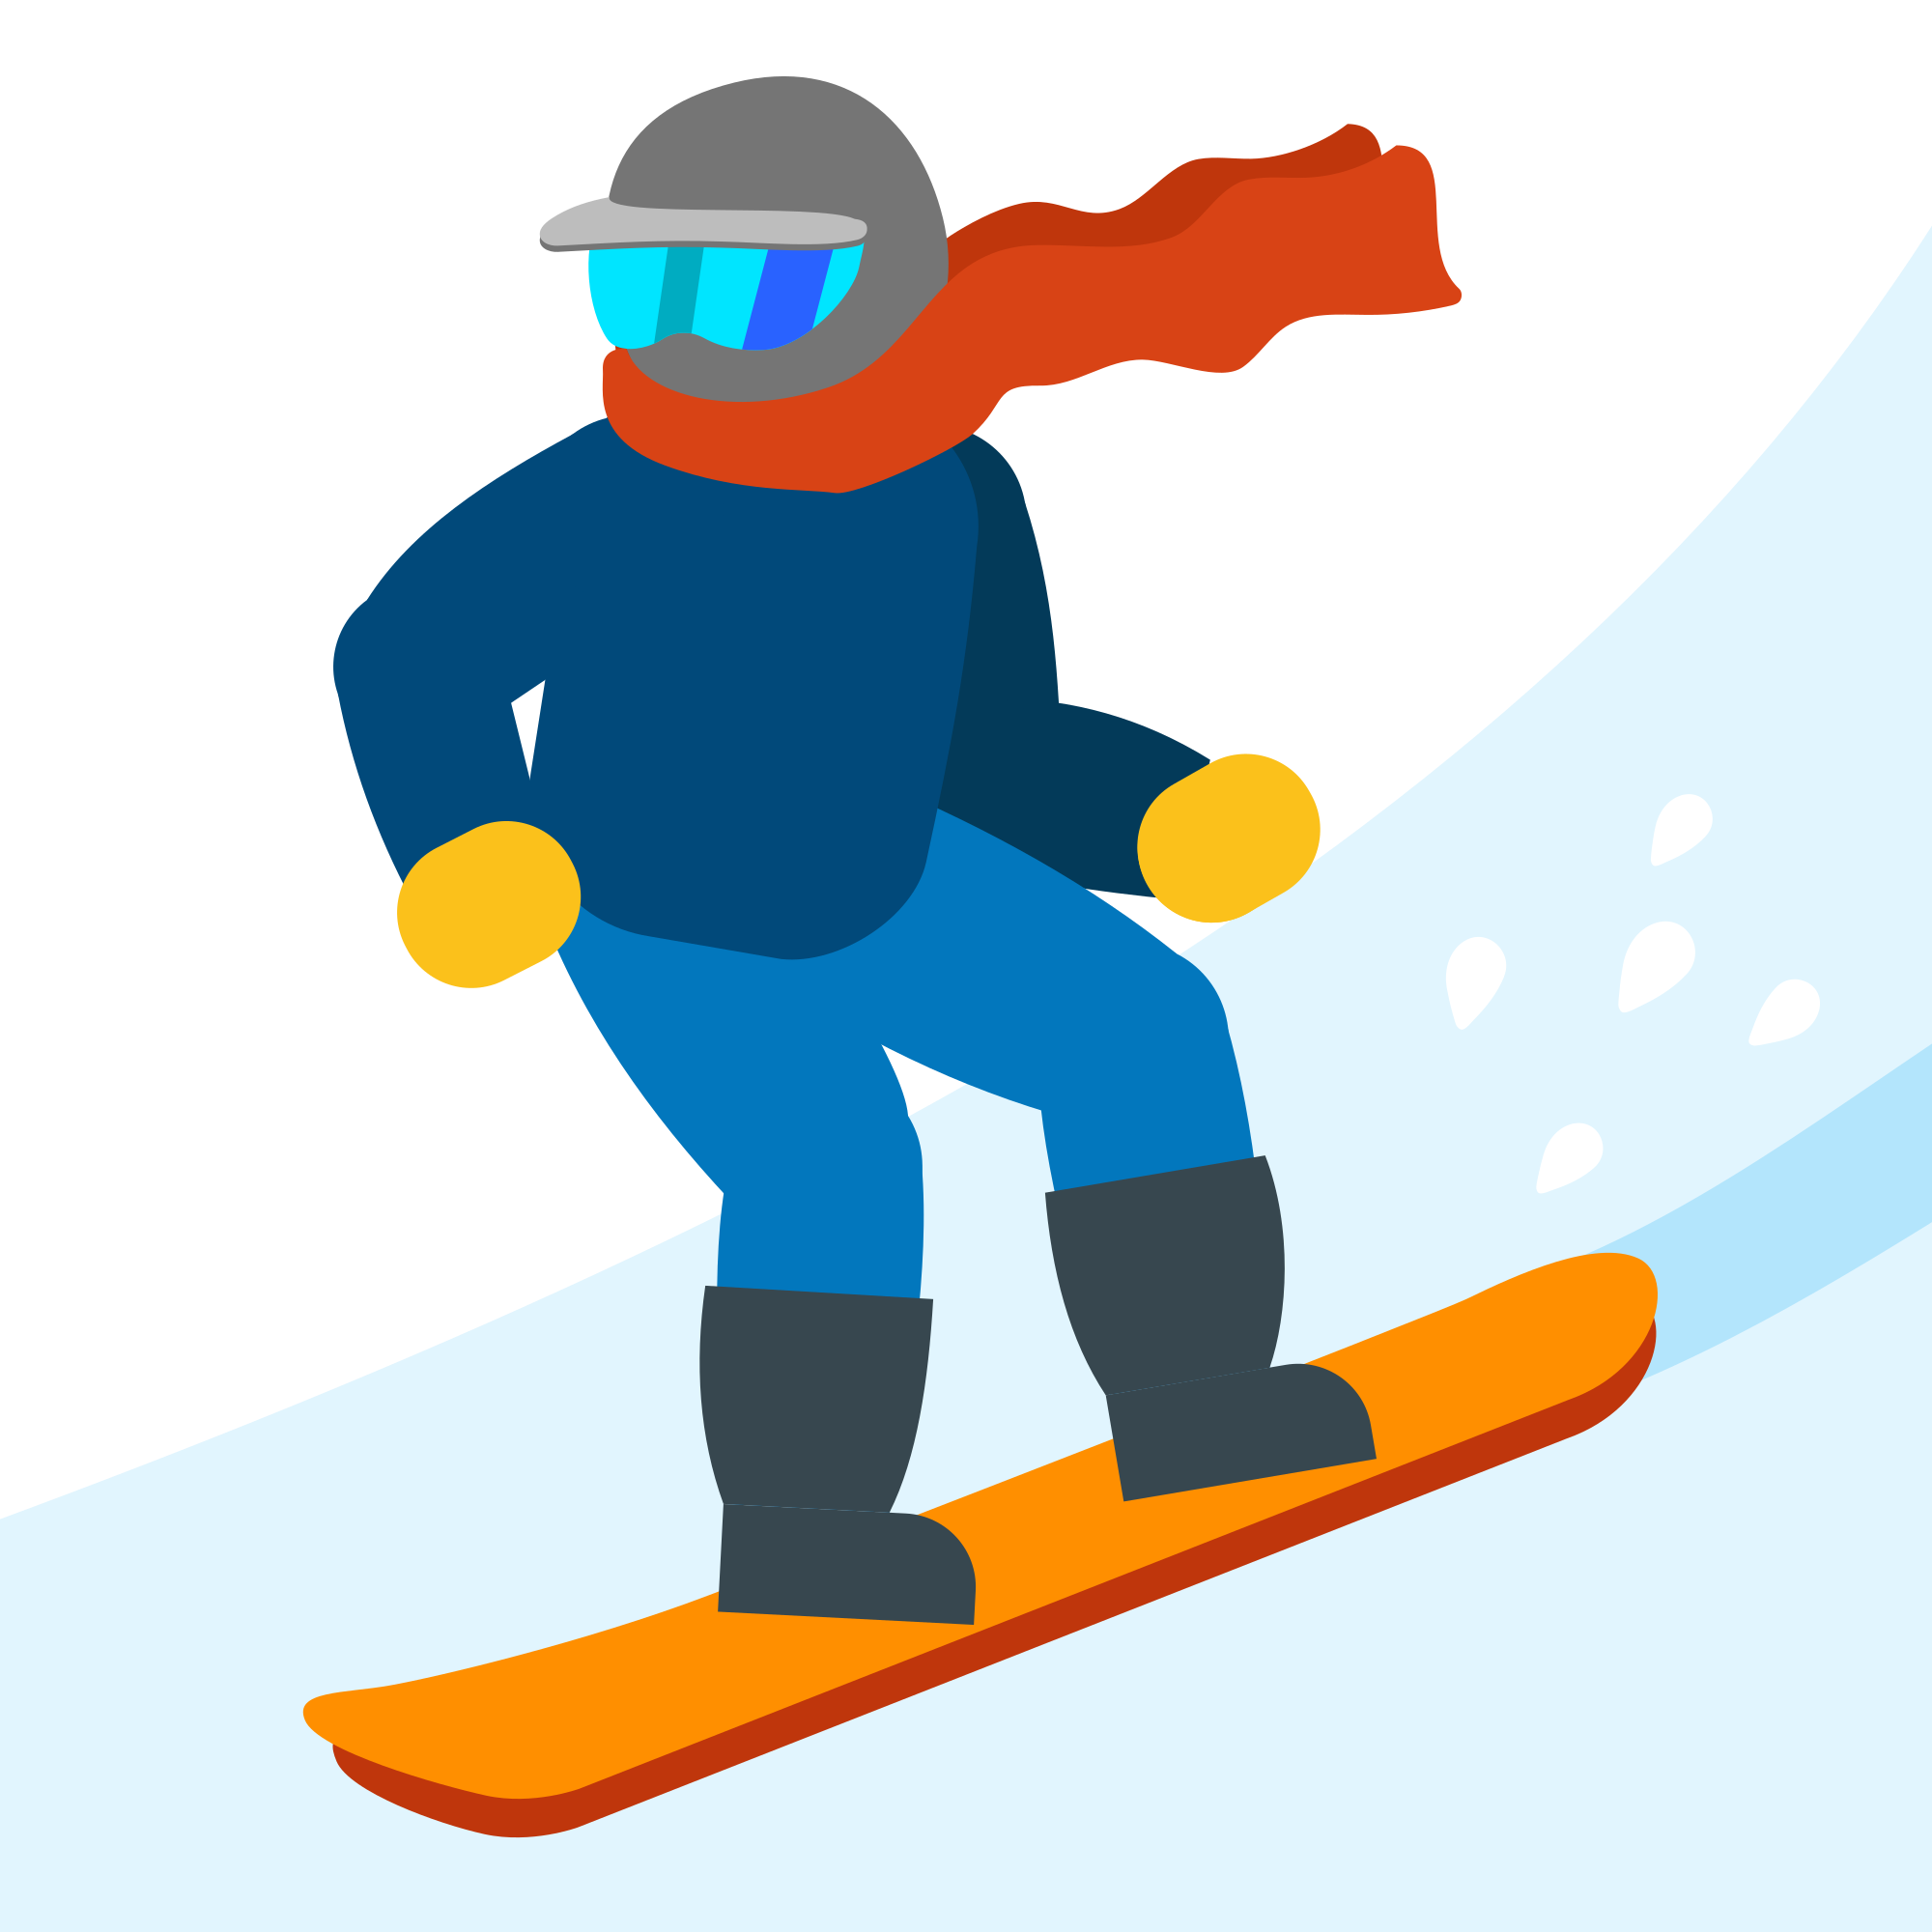 clipart transparent library snowboard clipart svg #83564825